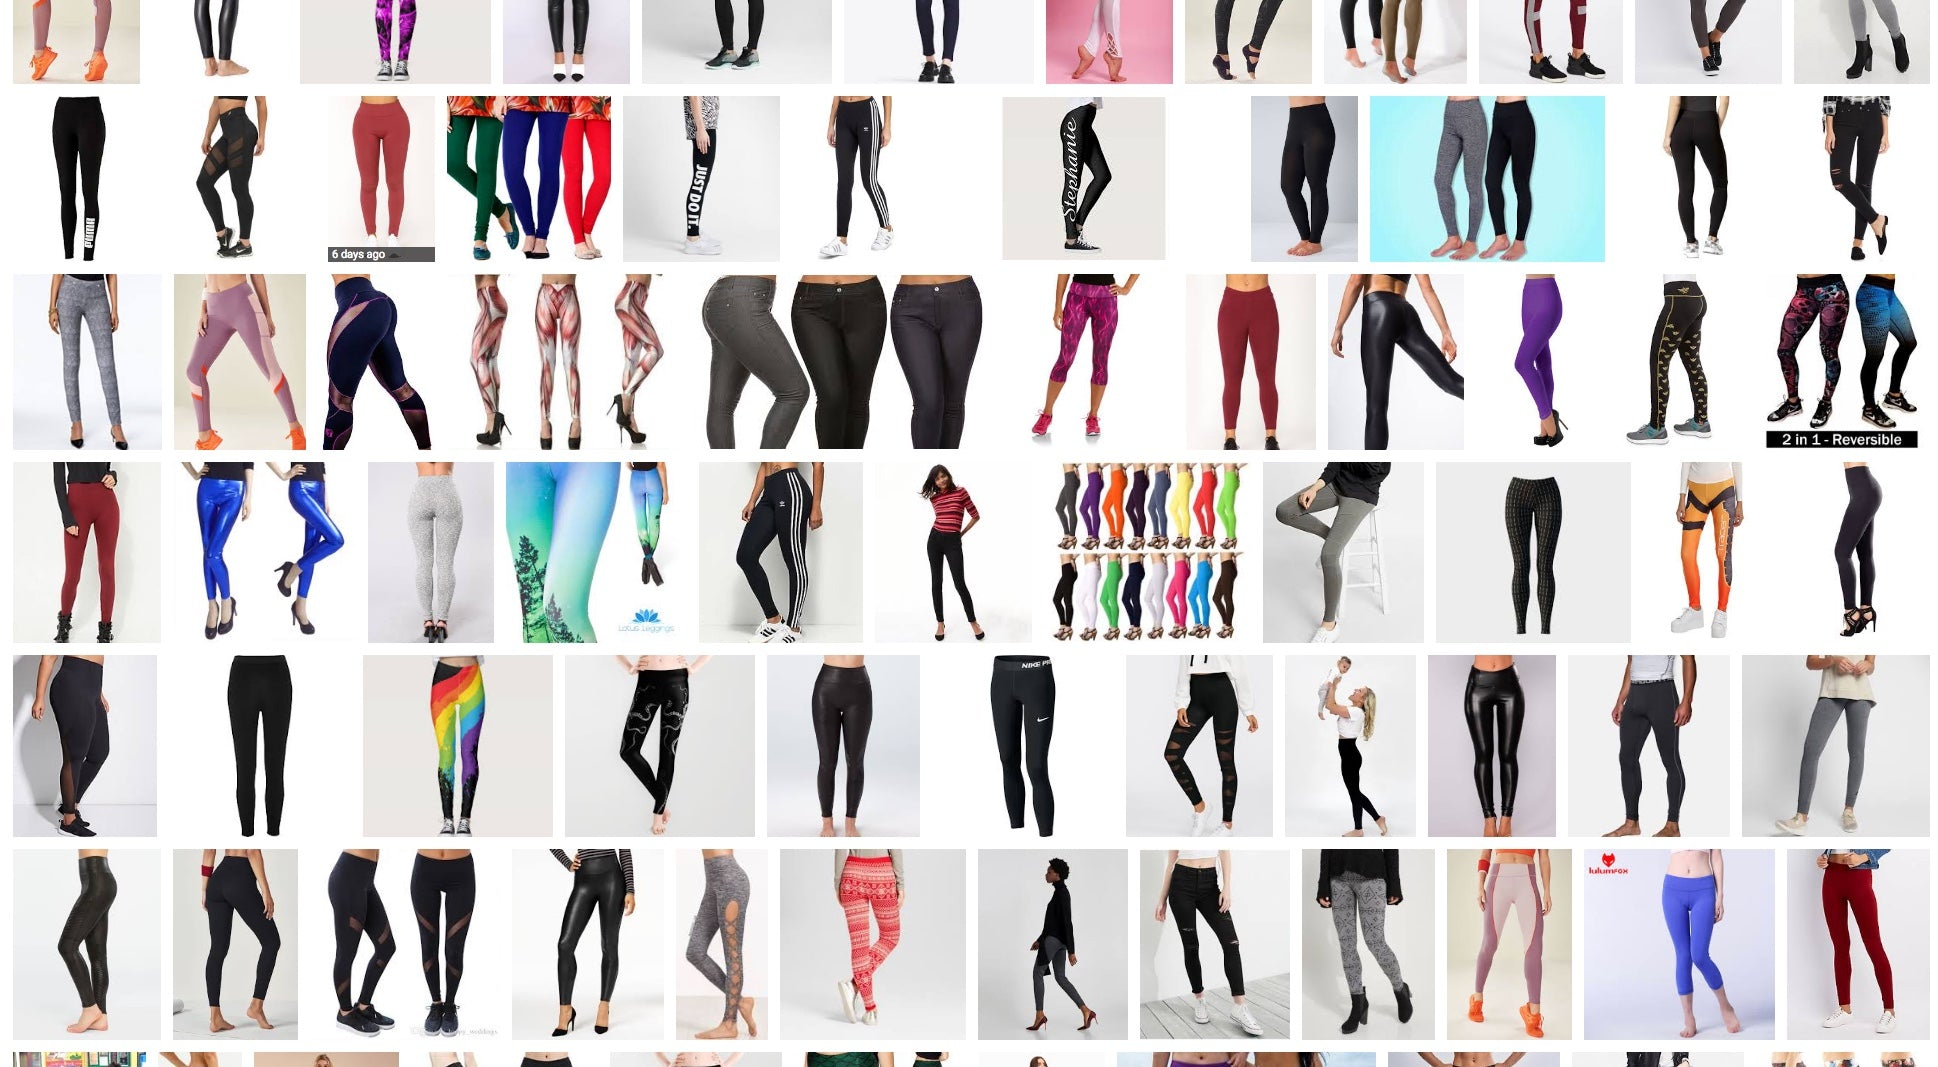 Leggings are a lifestyle, not just for exercise!